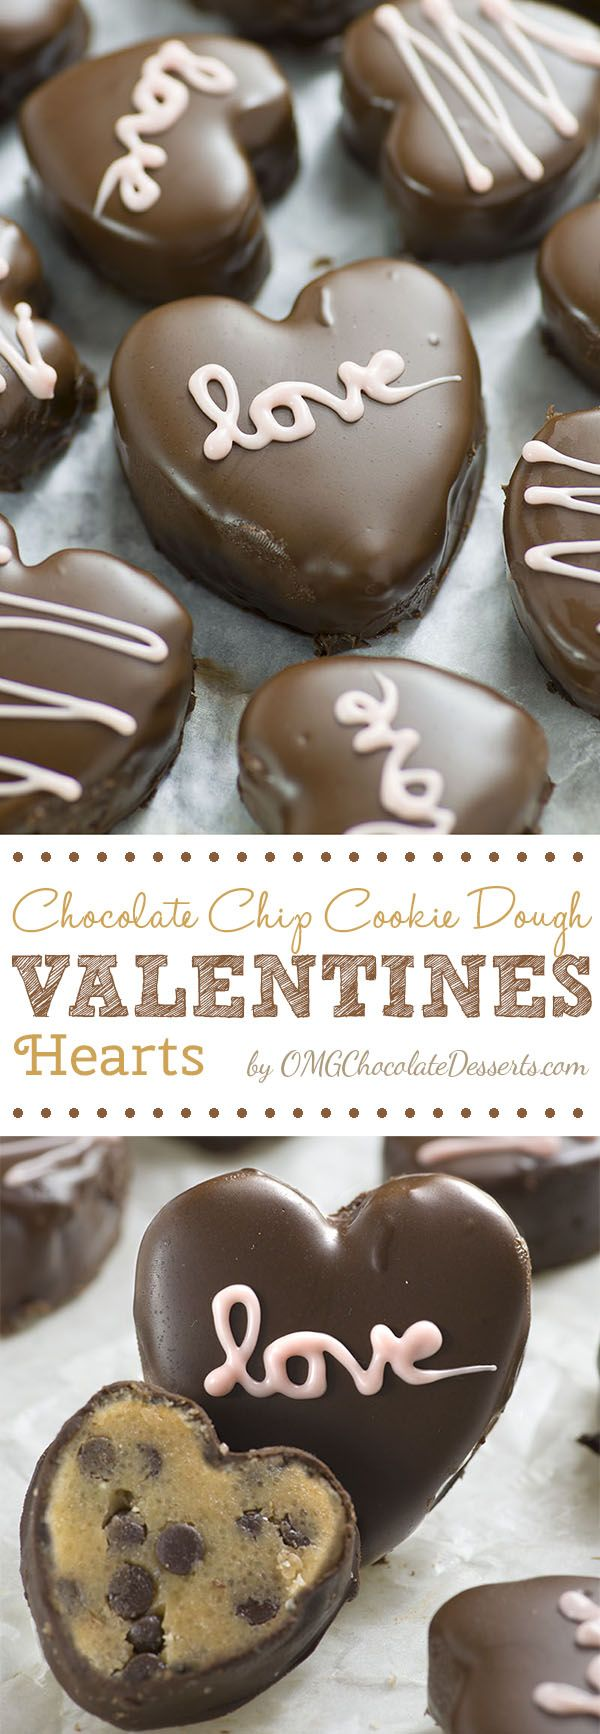 Chocolate chip Cookie Dough Valentine's Hearts.